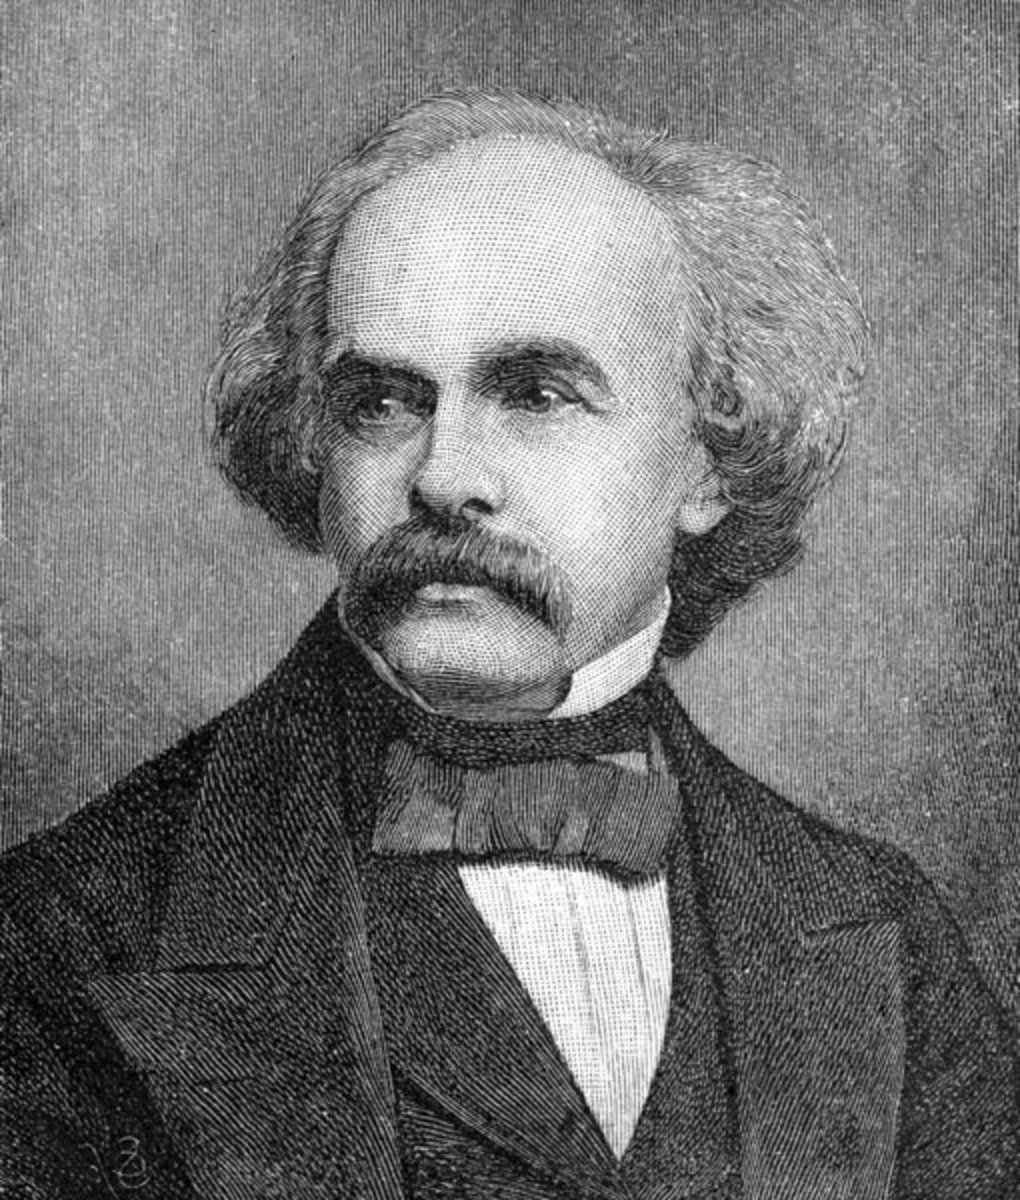 Nathaniel Hawthorne was a young man, when the age of photography arrived